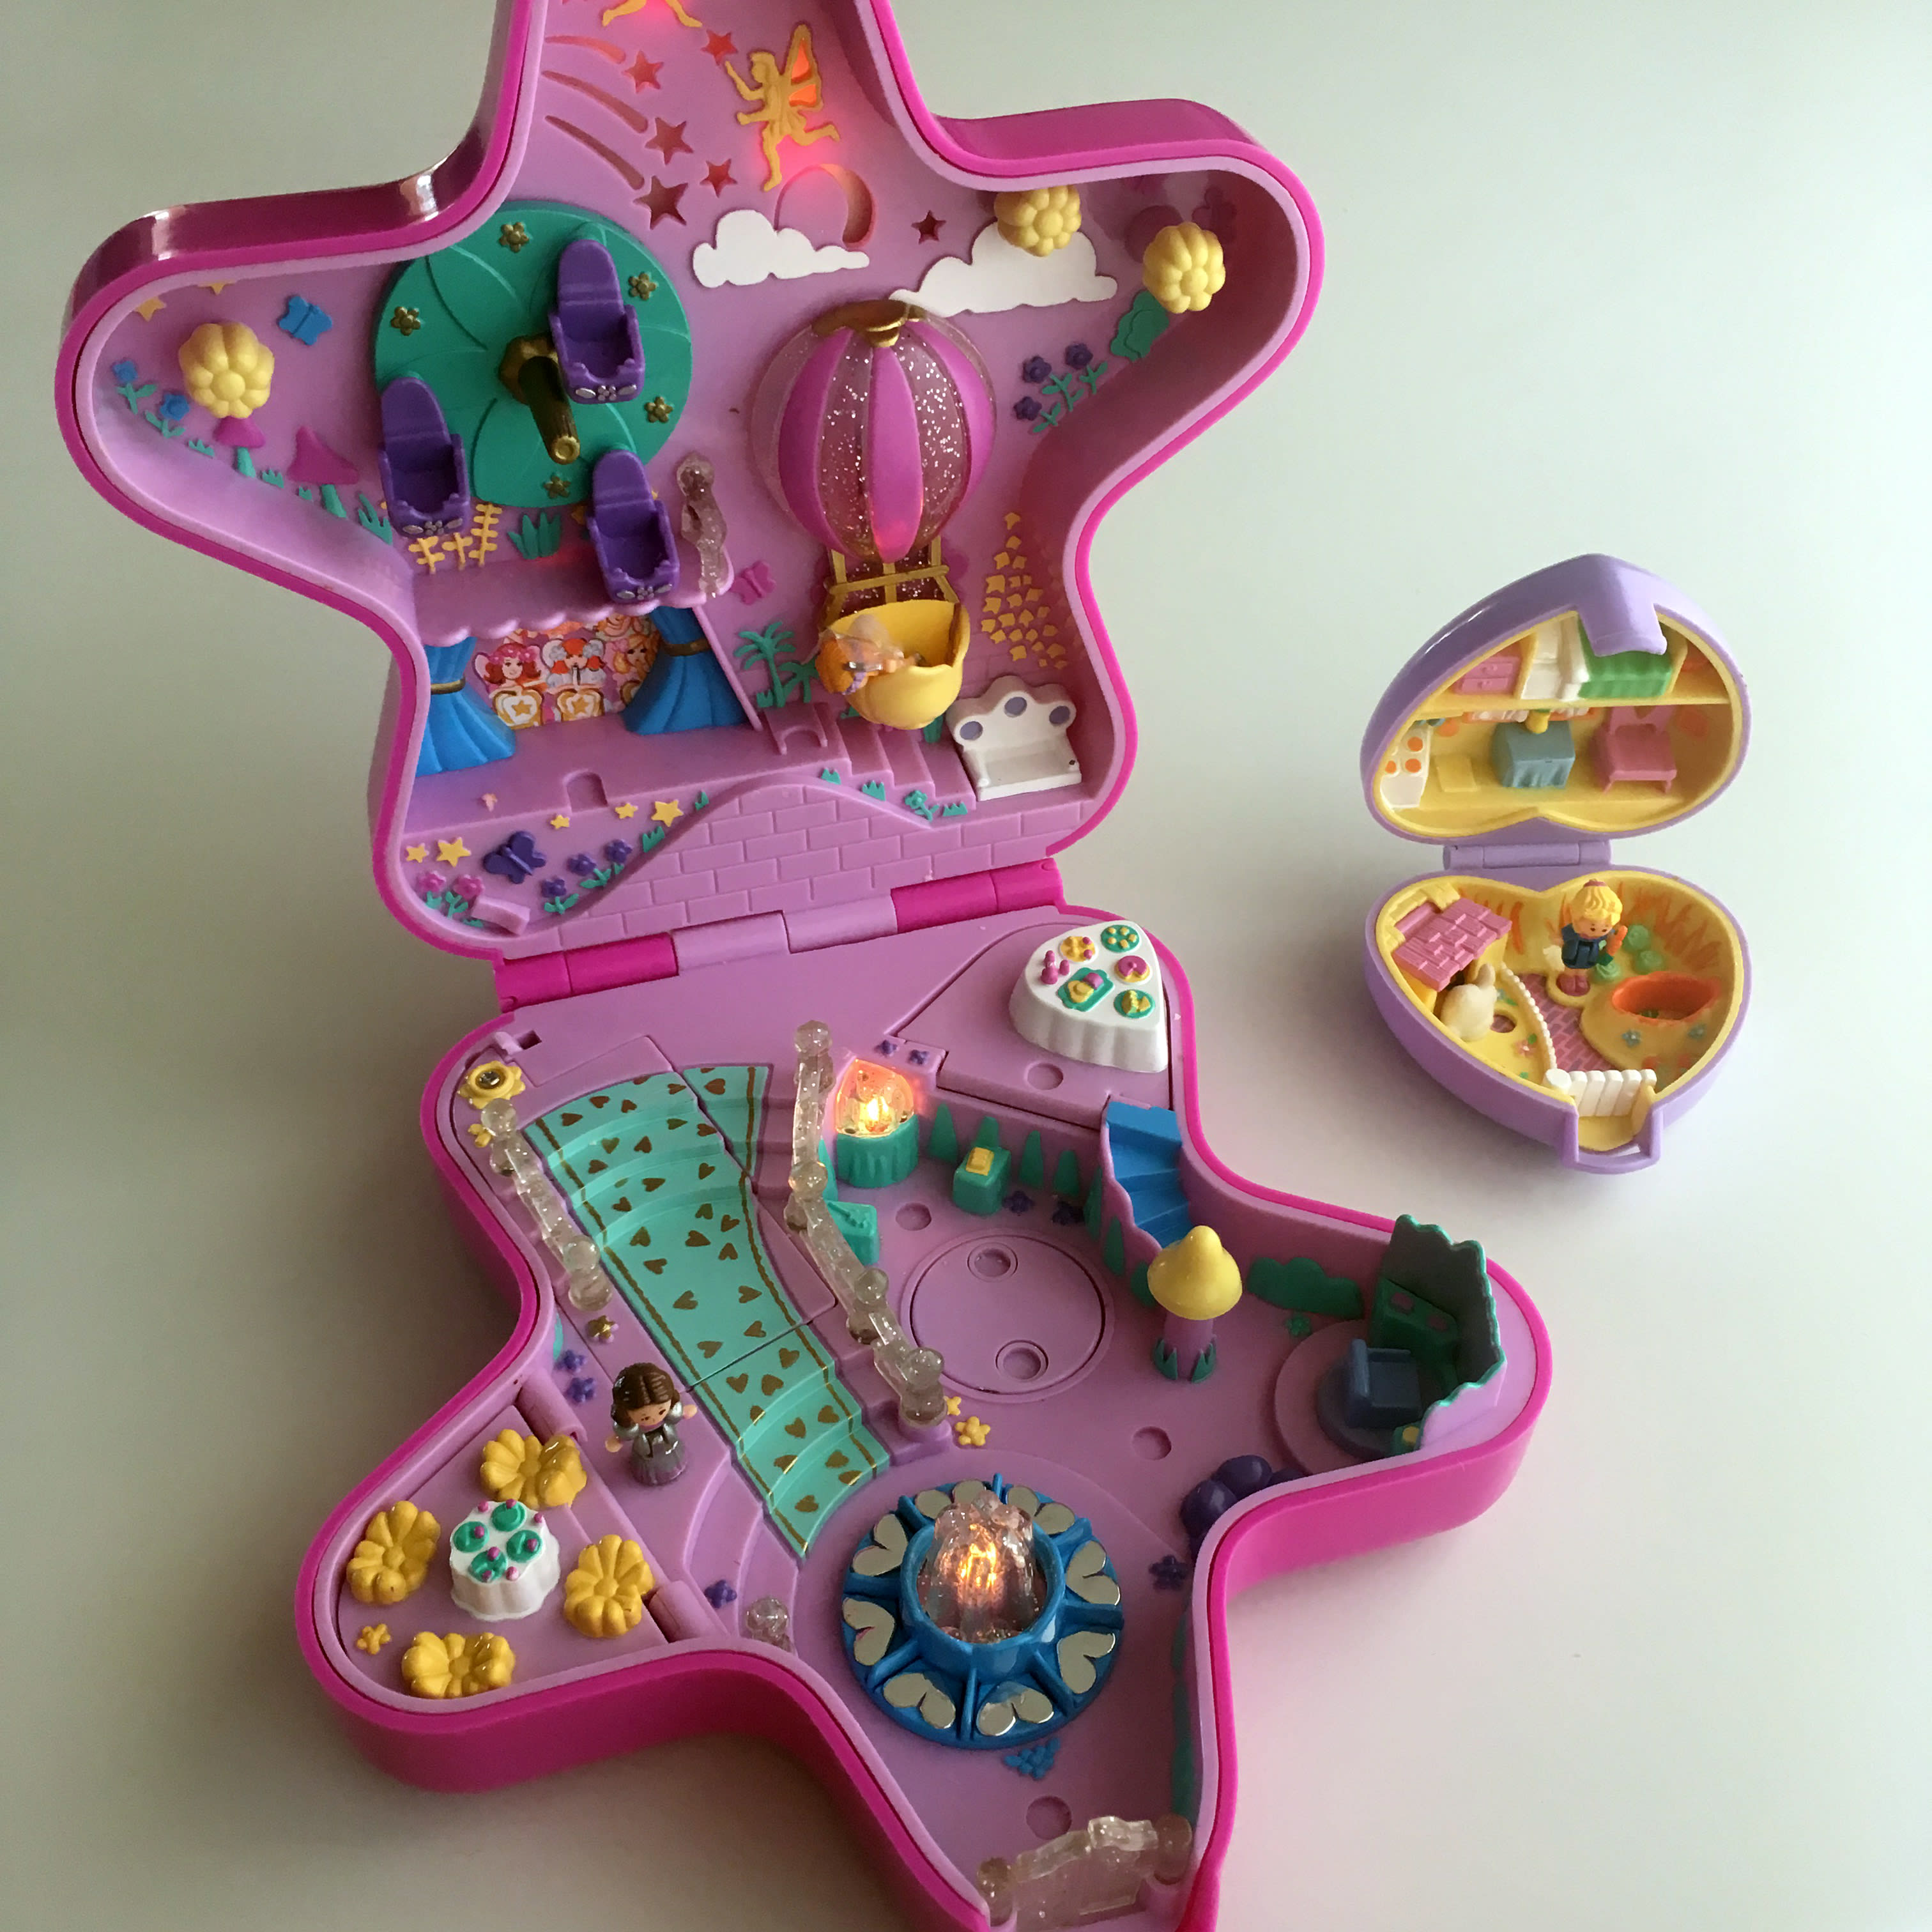 Why I Can't Stop Buying Vintage Toys: Vintage Polly Pocket sets